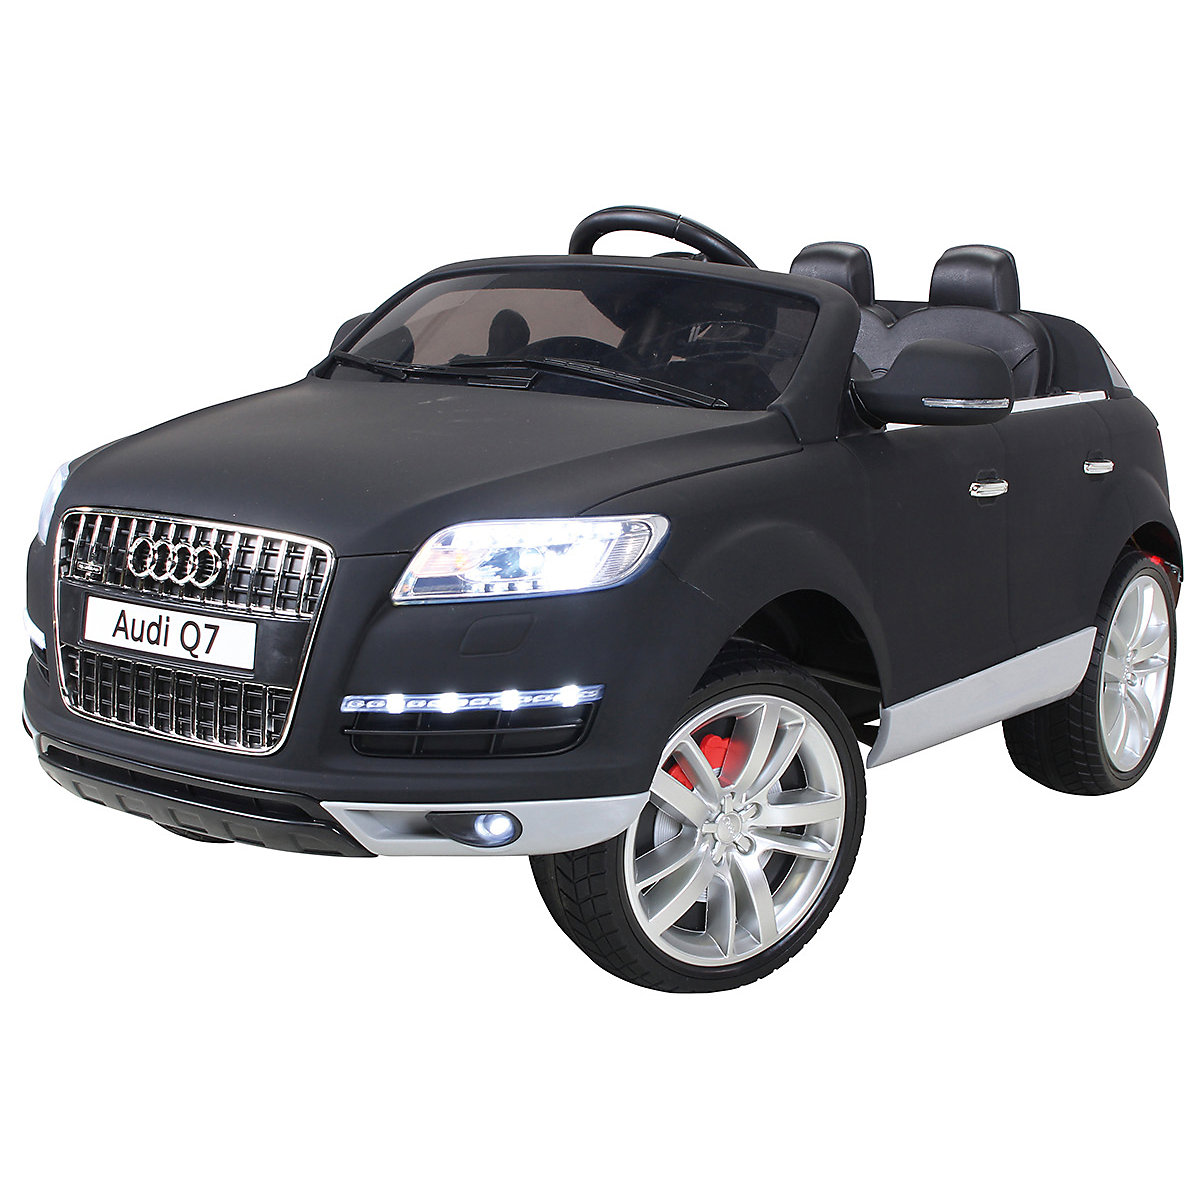 kinder elektroauto audi q7 suv lackiert matt schwarz mytoys. Black Bedroom Furniture Sets. Home Design Ideas